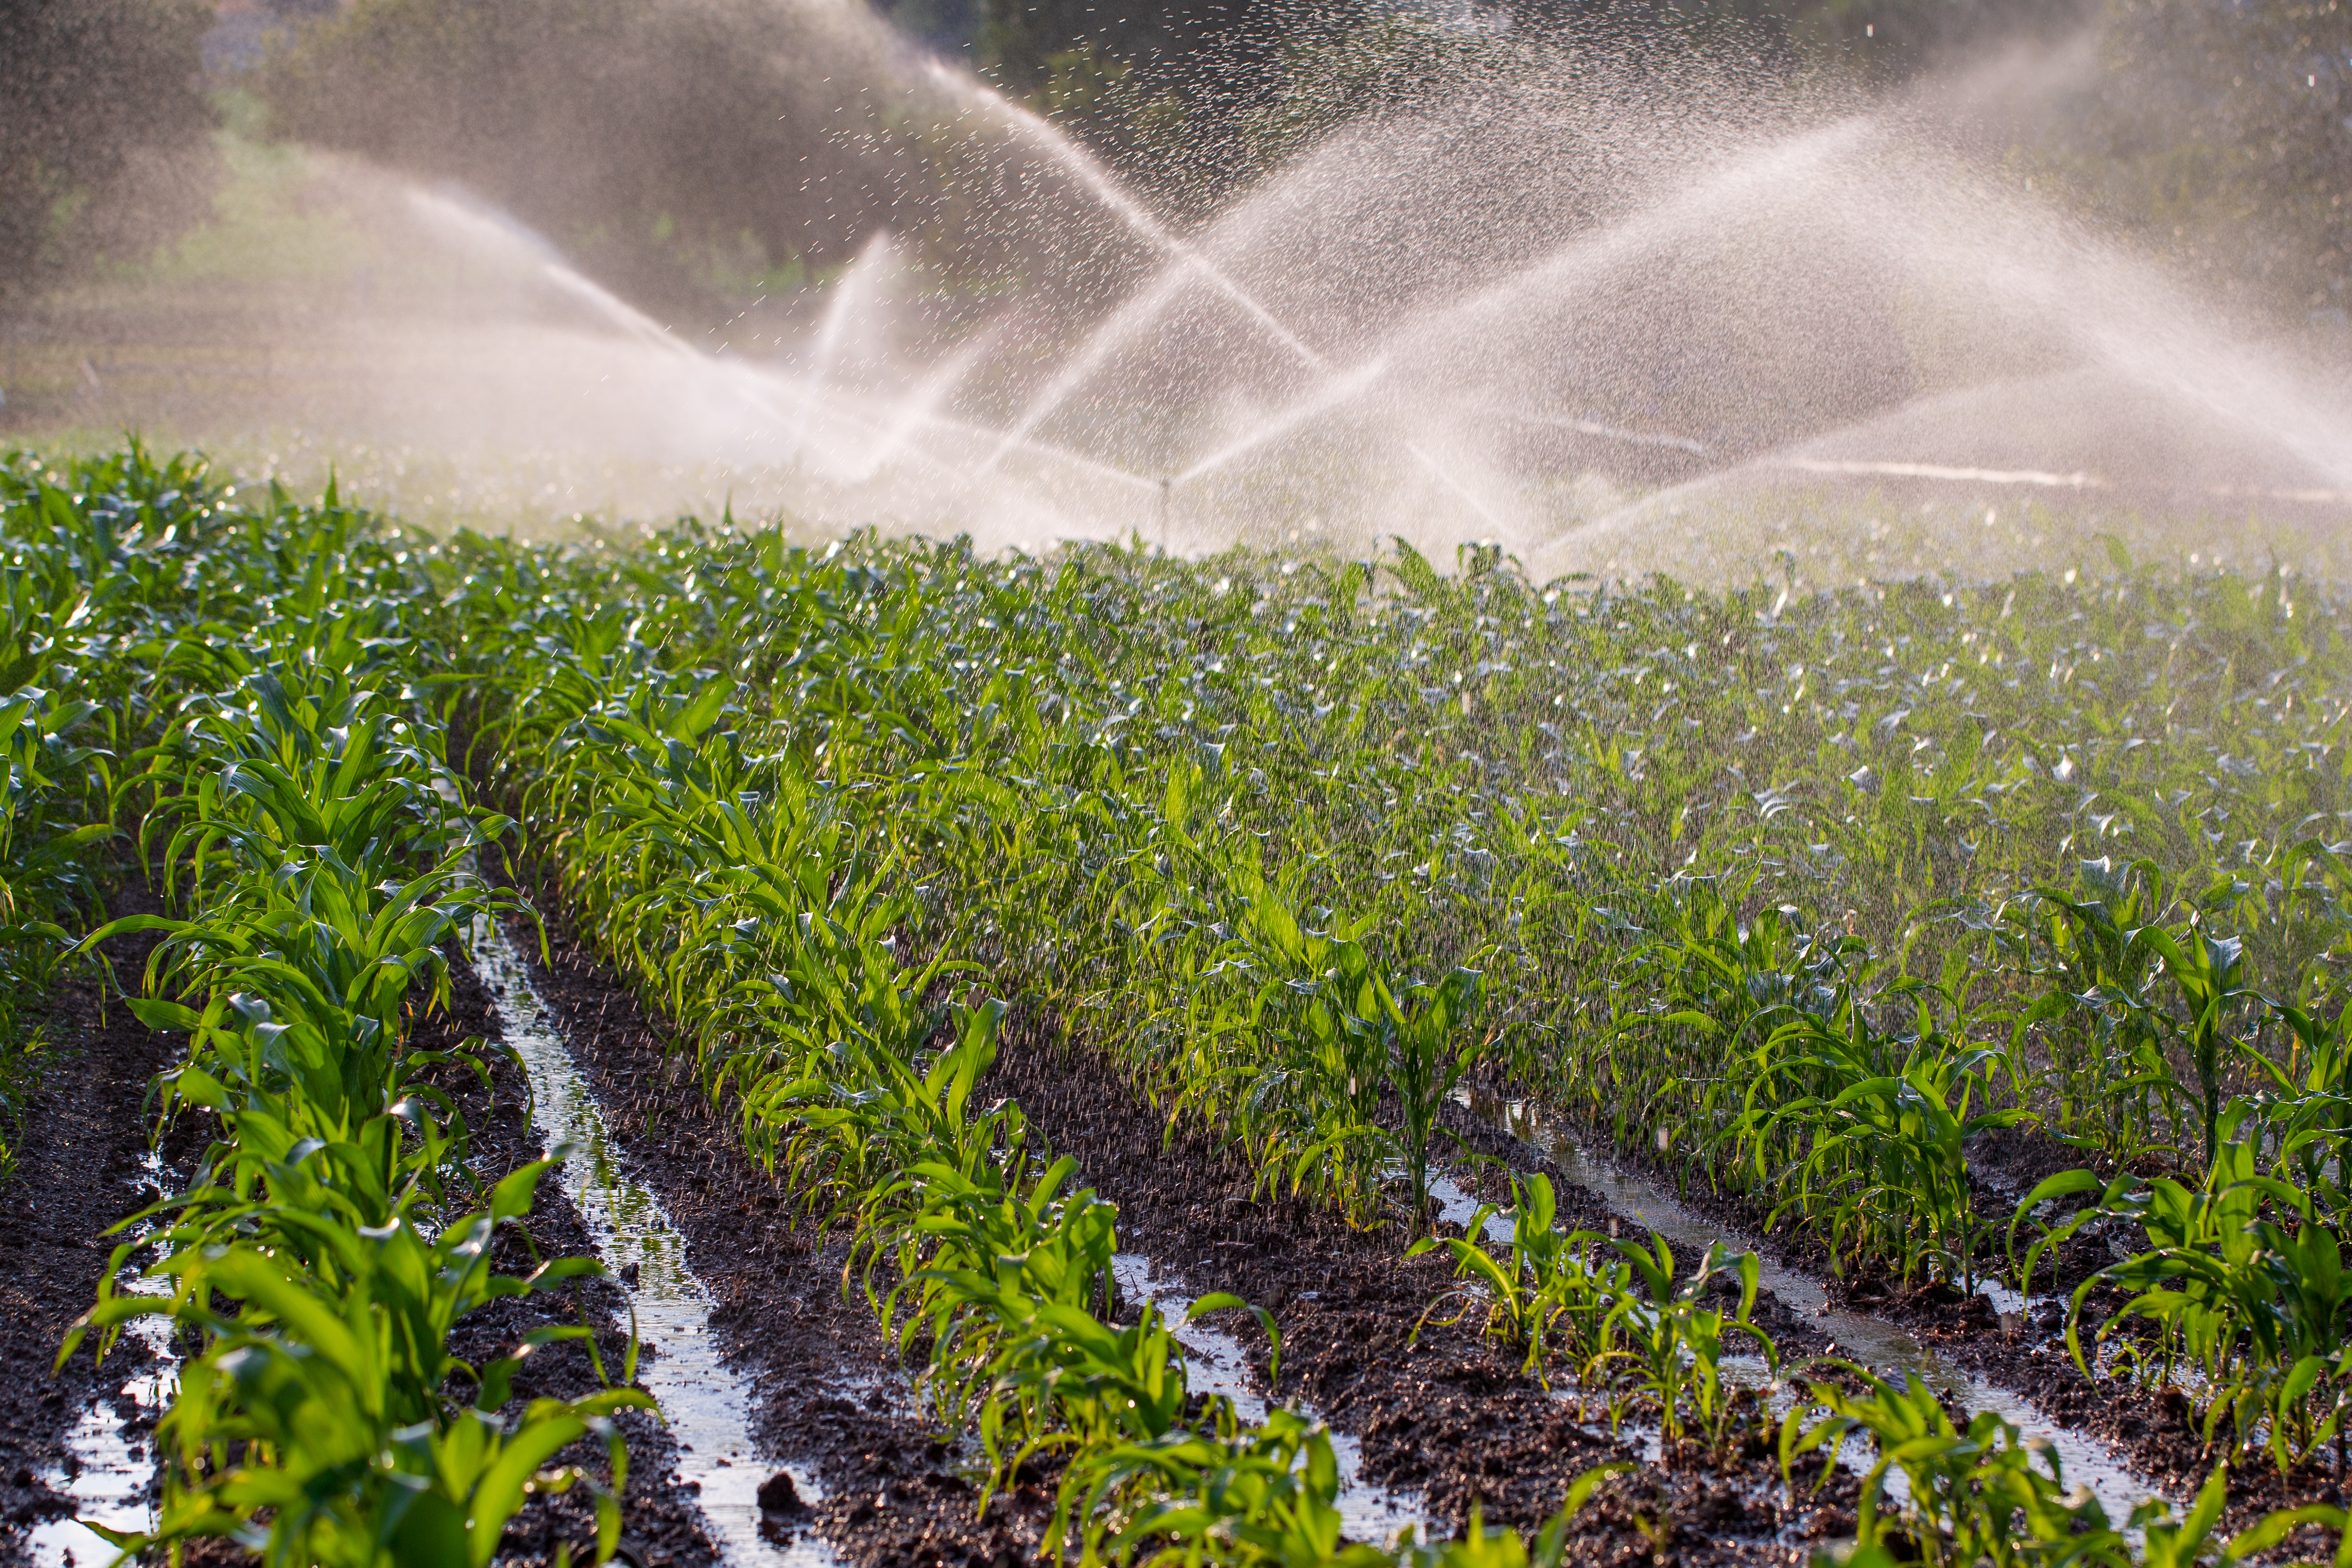 crops being irrigated with clean water